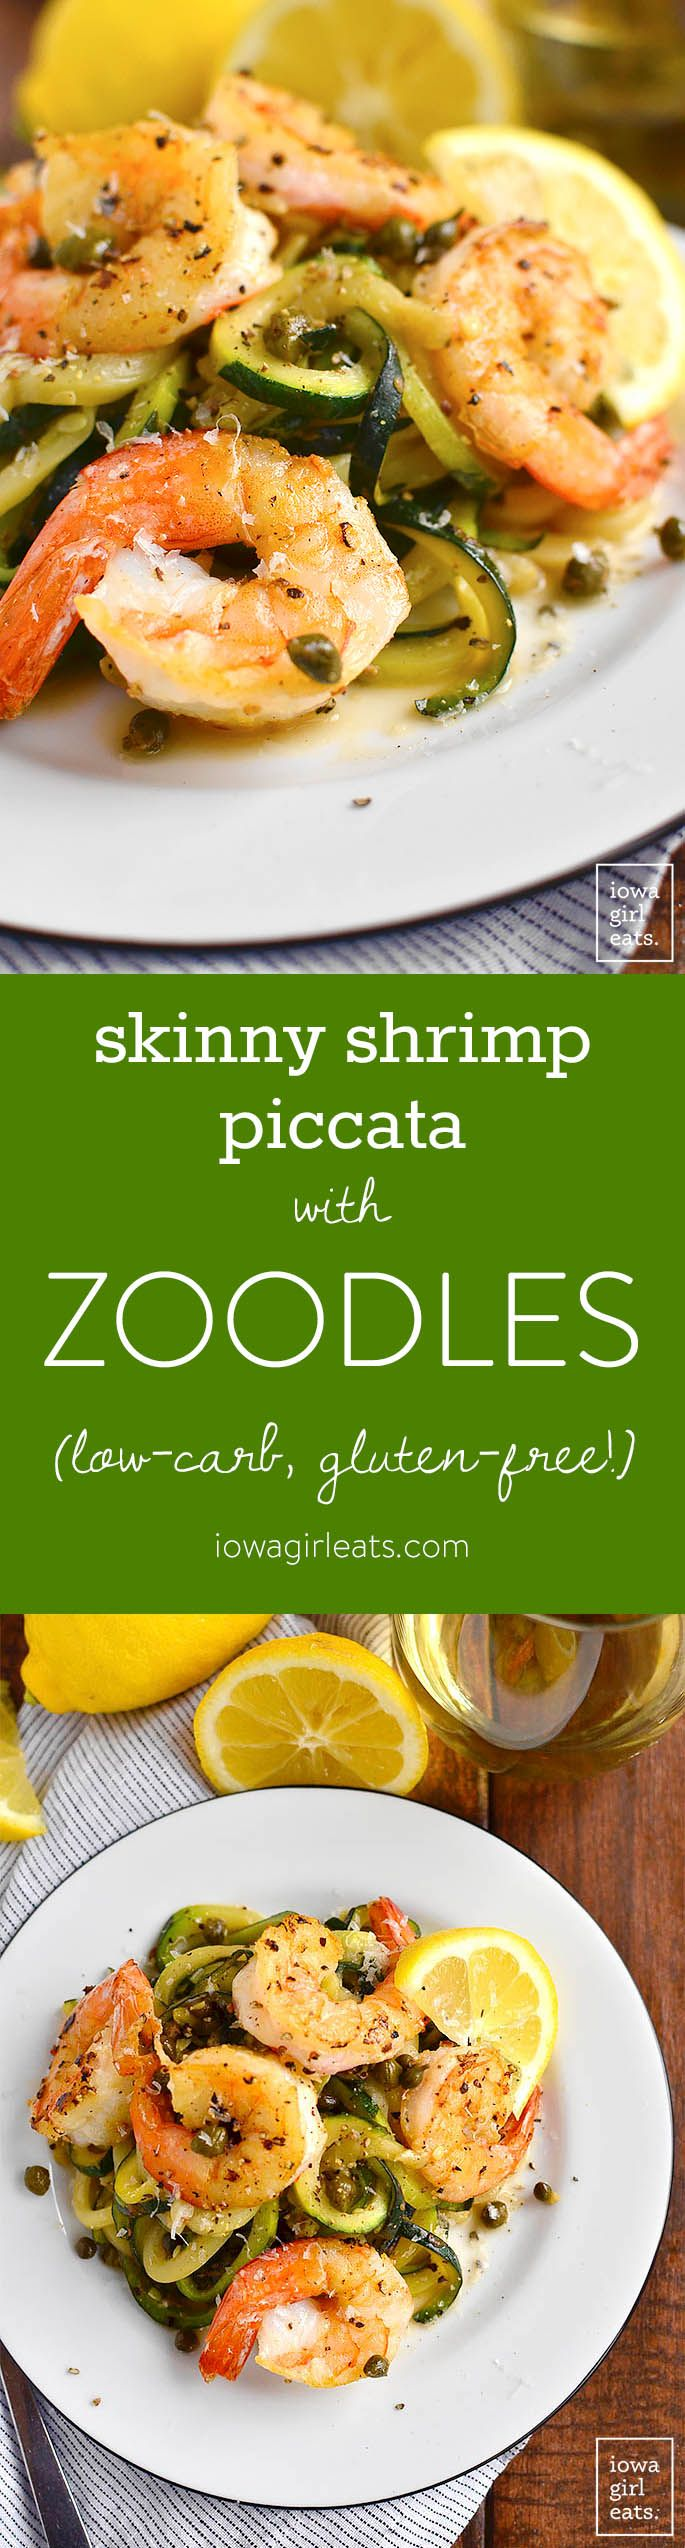 Skinny Shrimp Piccata with Zoodles is low-carb, gluten-free, and cooks in under 20 minutes in just one skillet. Fresh, light, and delicious! | iowagirleats.com